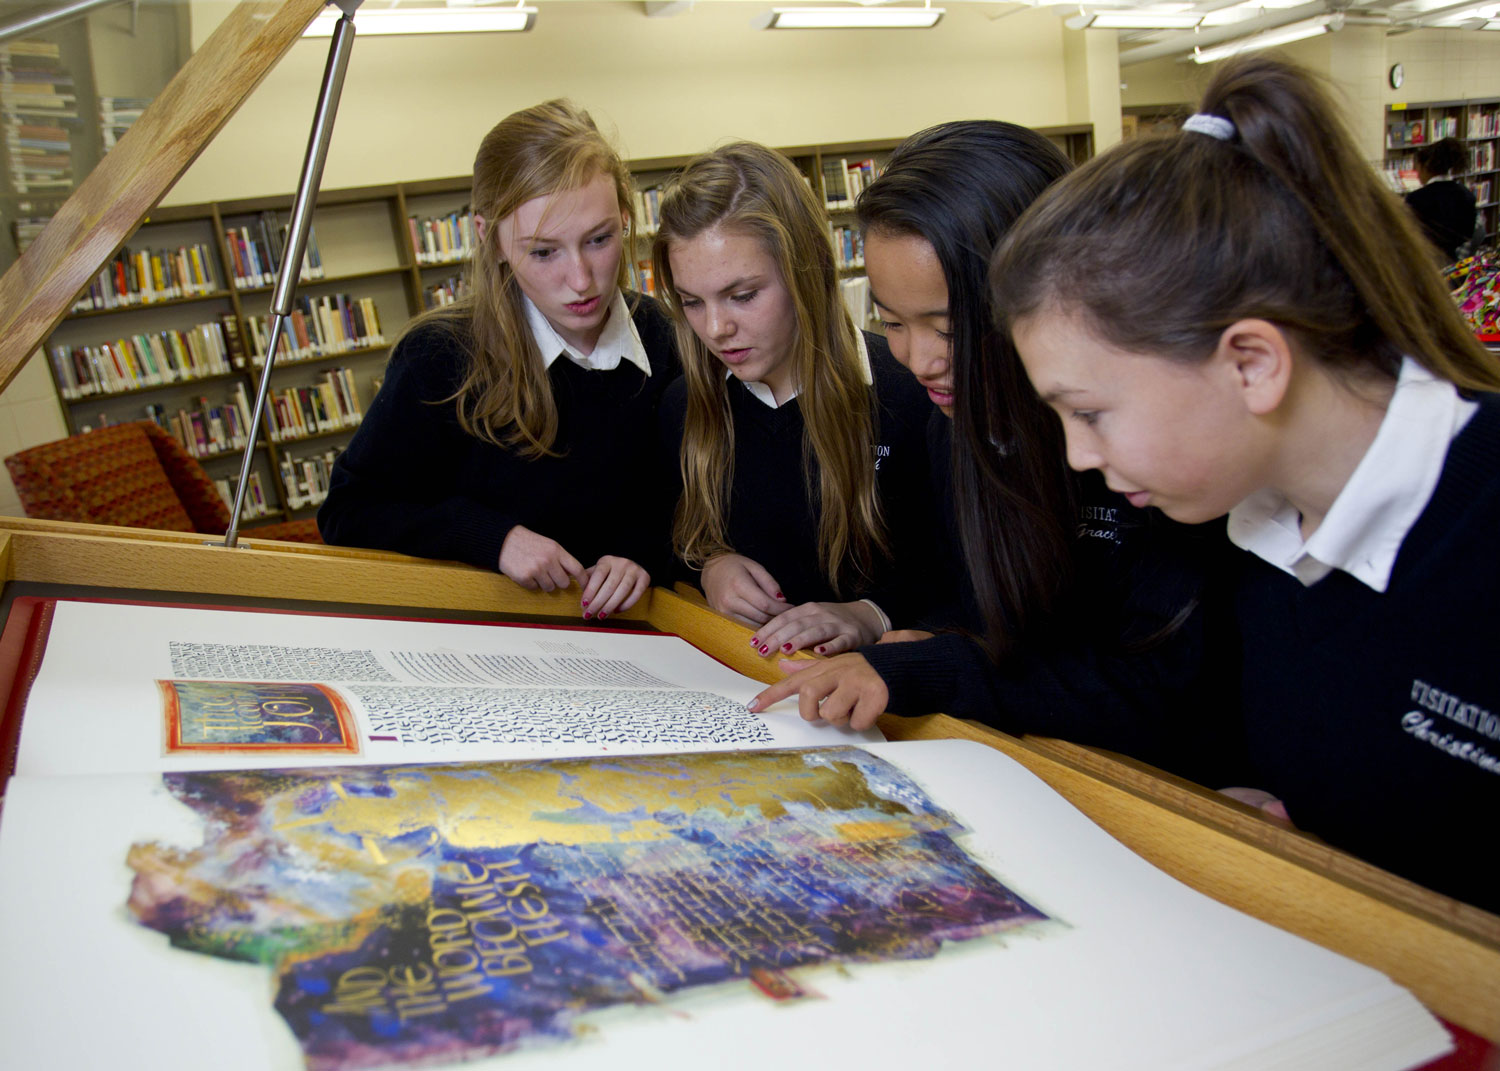 Students viewing the St. John's Bible